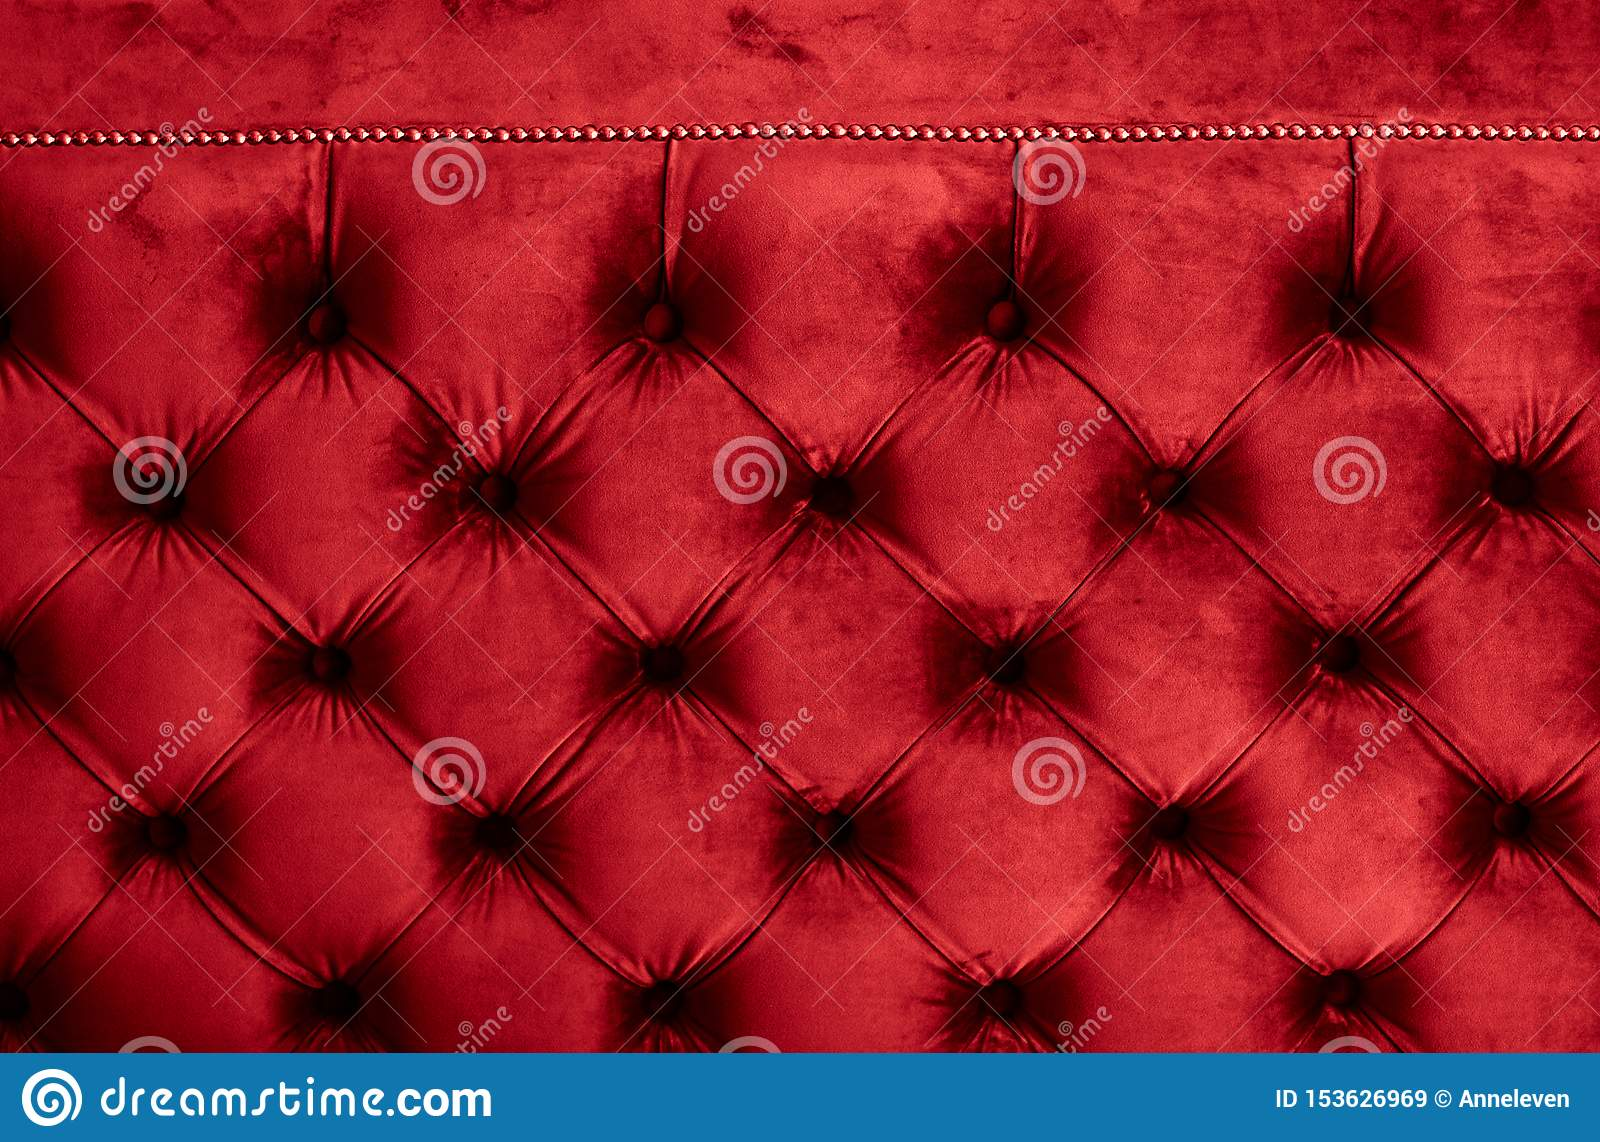 Red luxury velour quilted sofa upholstery with buttons, elegant home decor texture and background